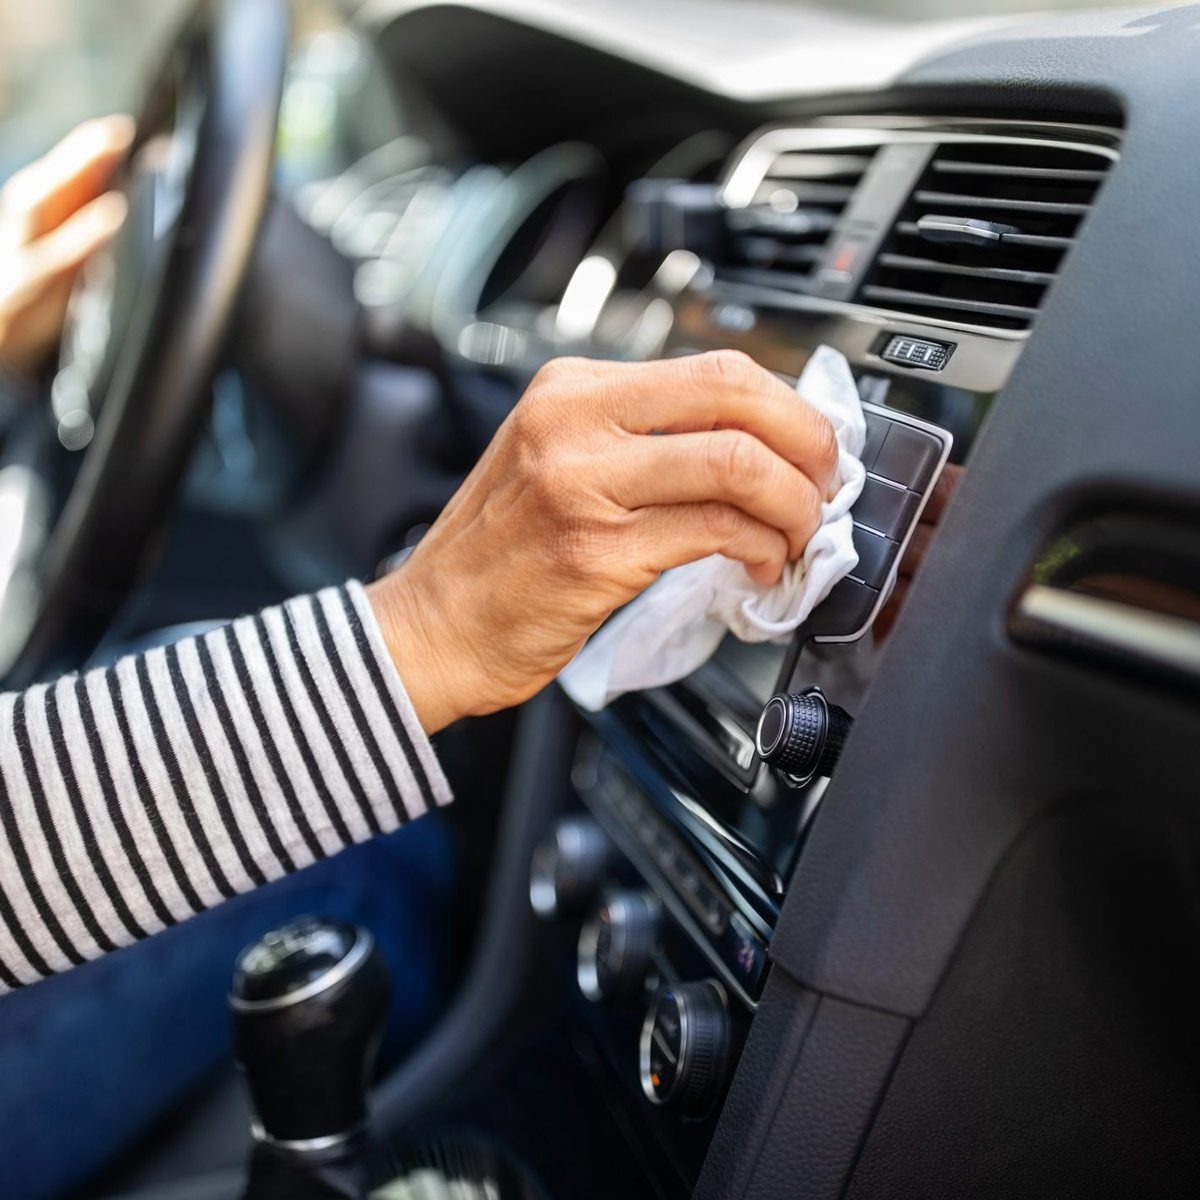 Female hands cleaning car vents with wipe